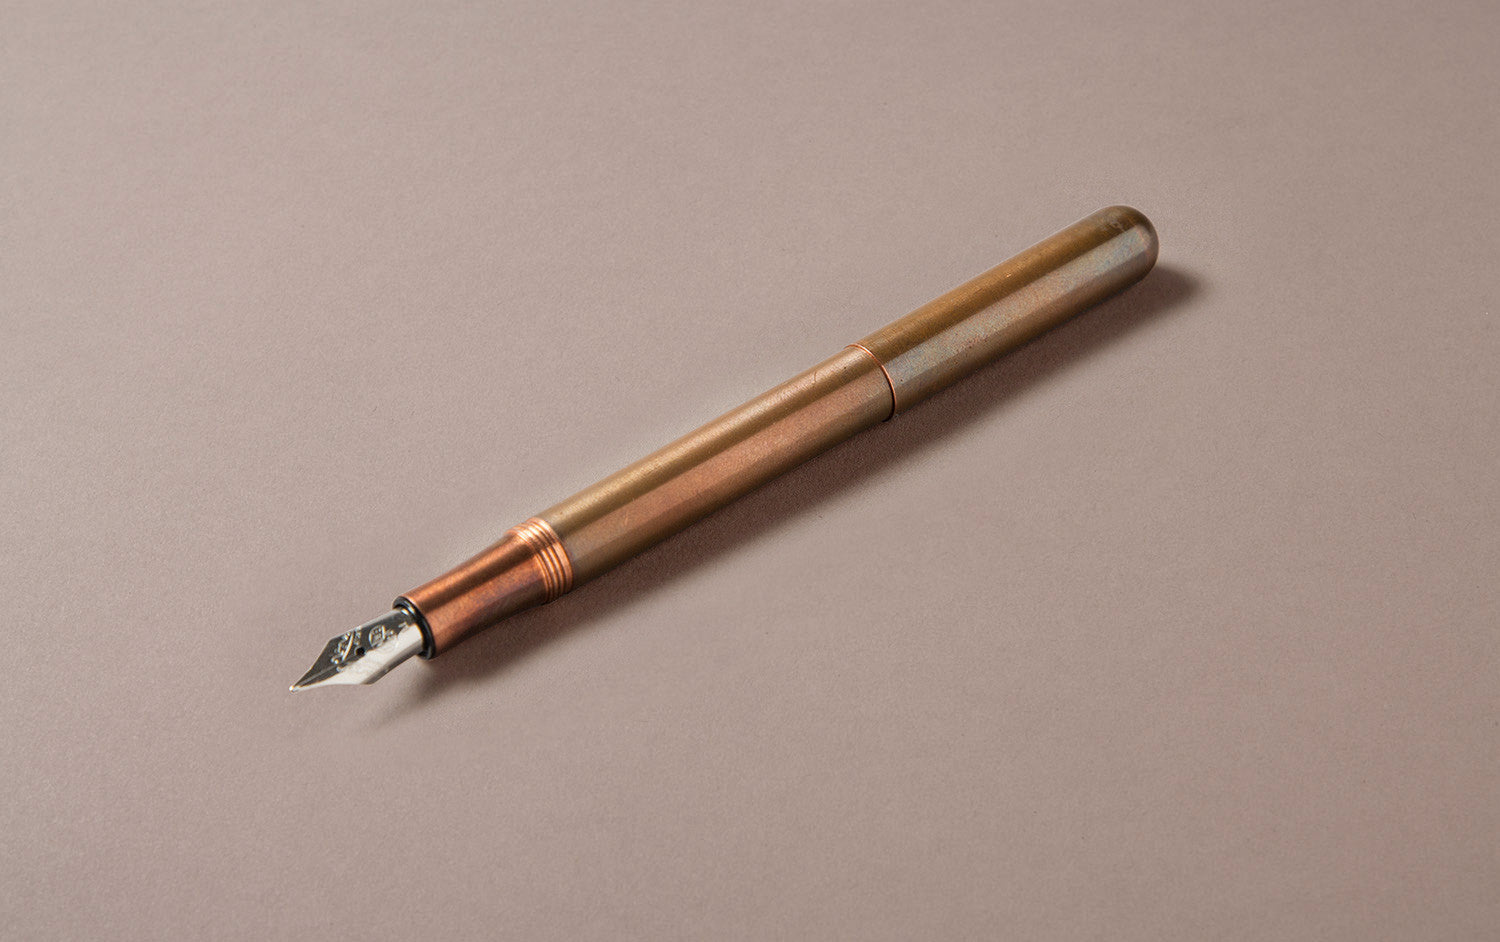 Copper Kaweco Liliput Fountain Pen